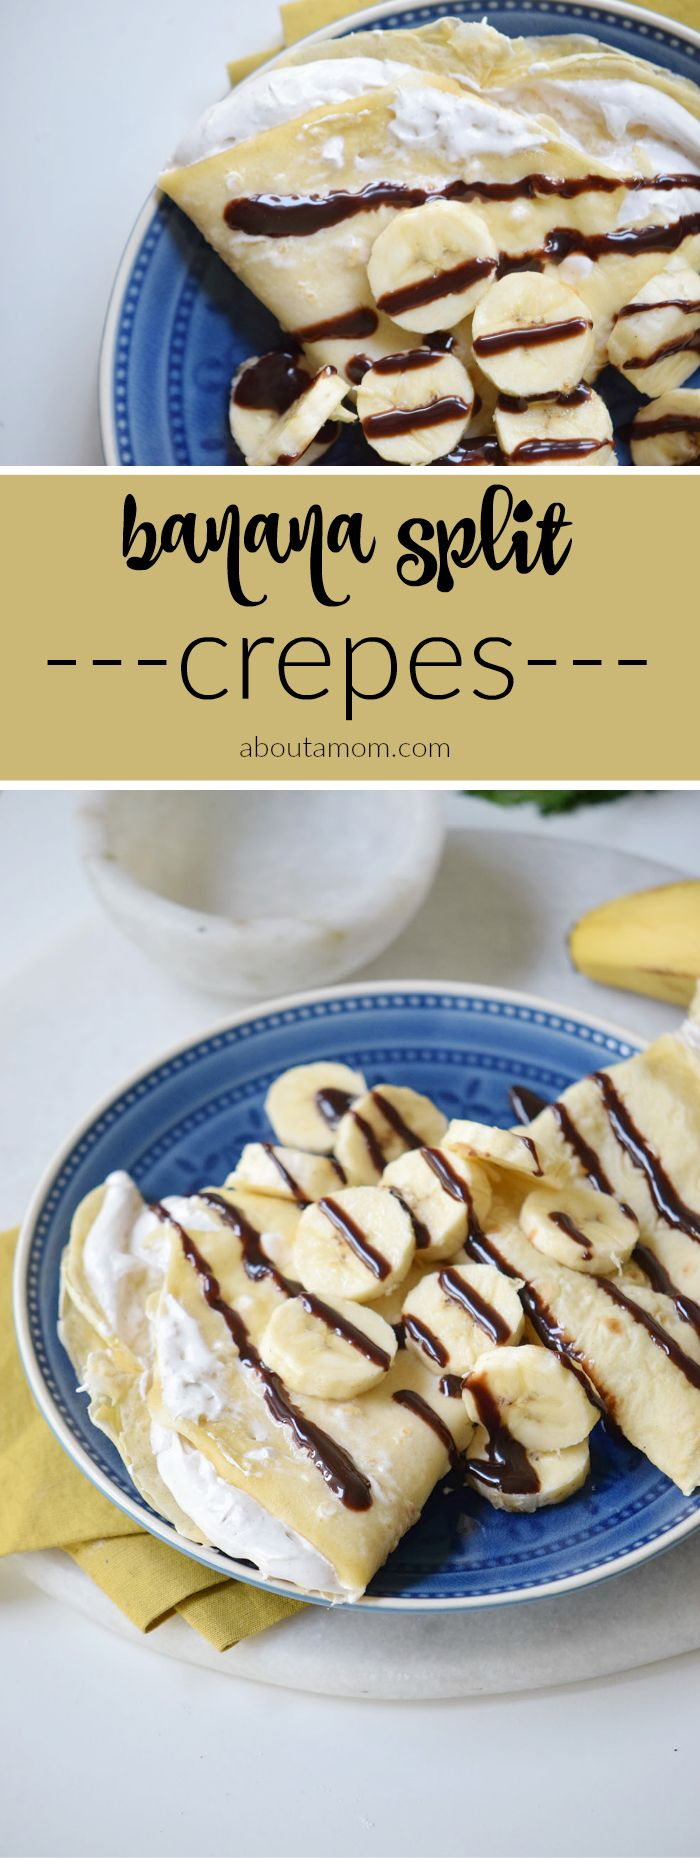 Treat yourself to some banana split crepes. Delicate crepes with a sweet cream filling, bananas and chocolate.